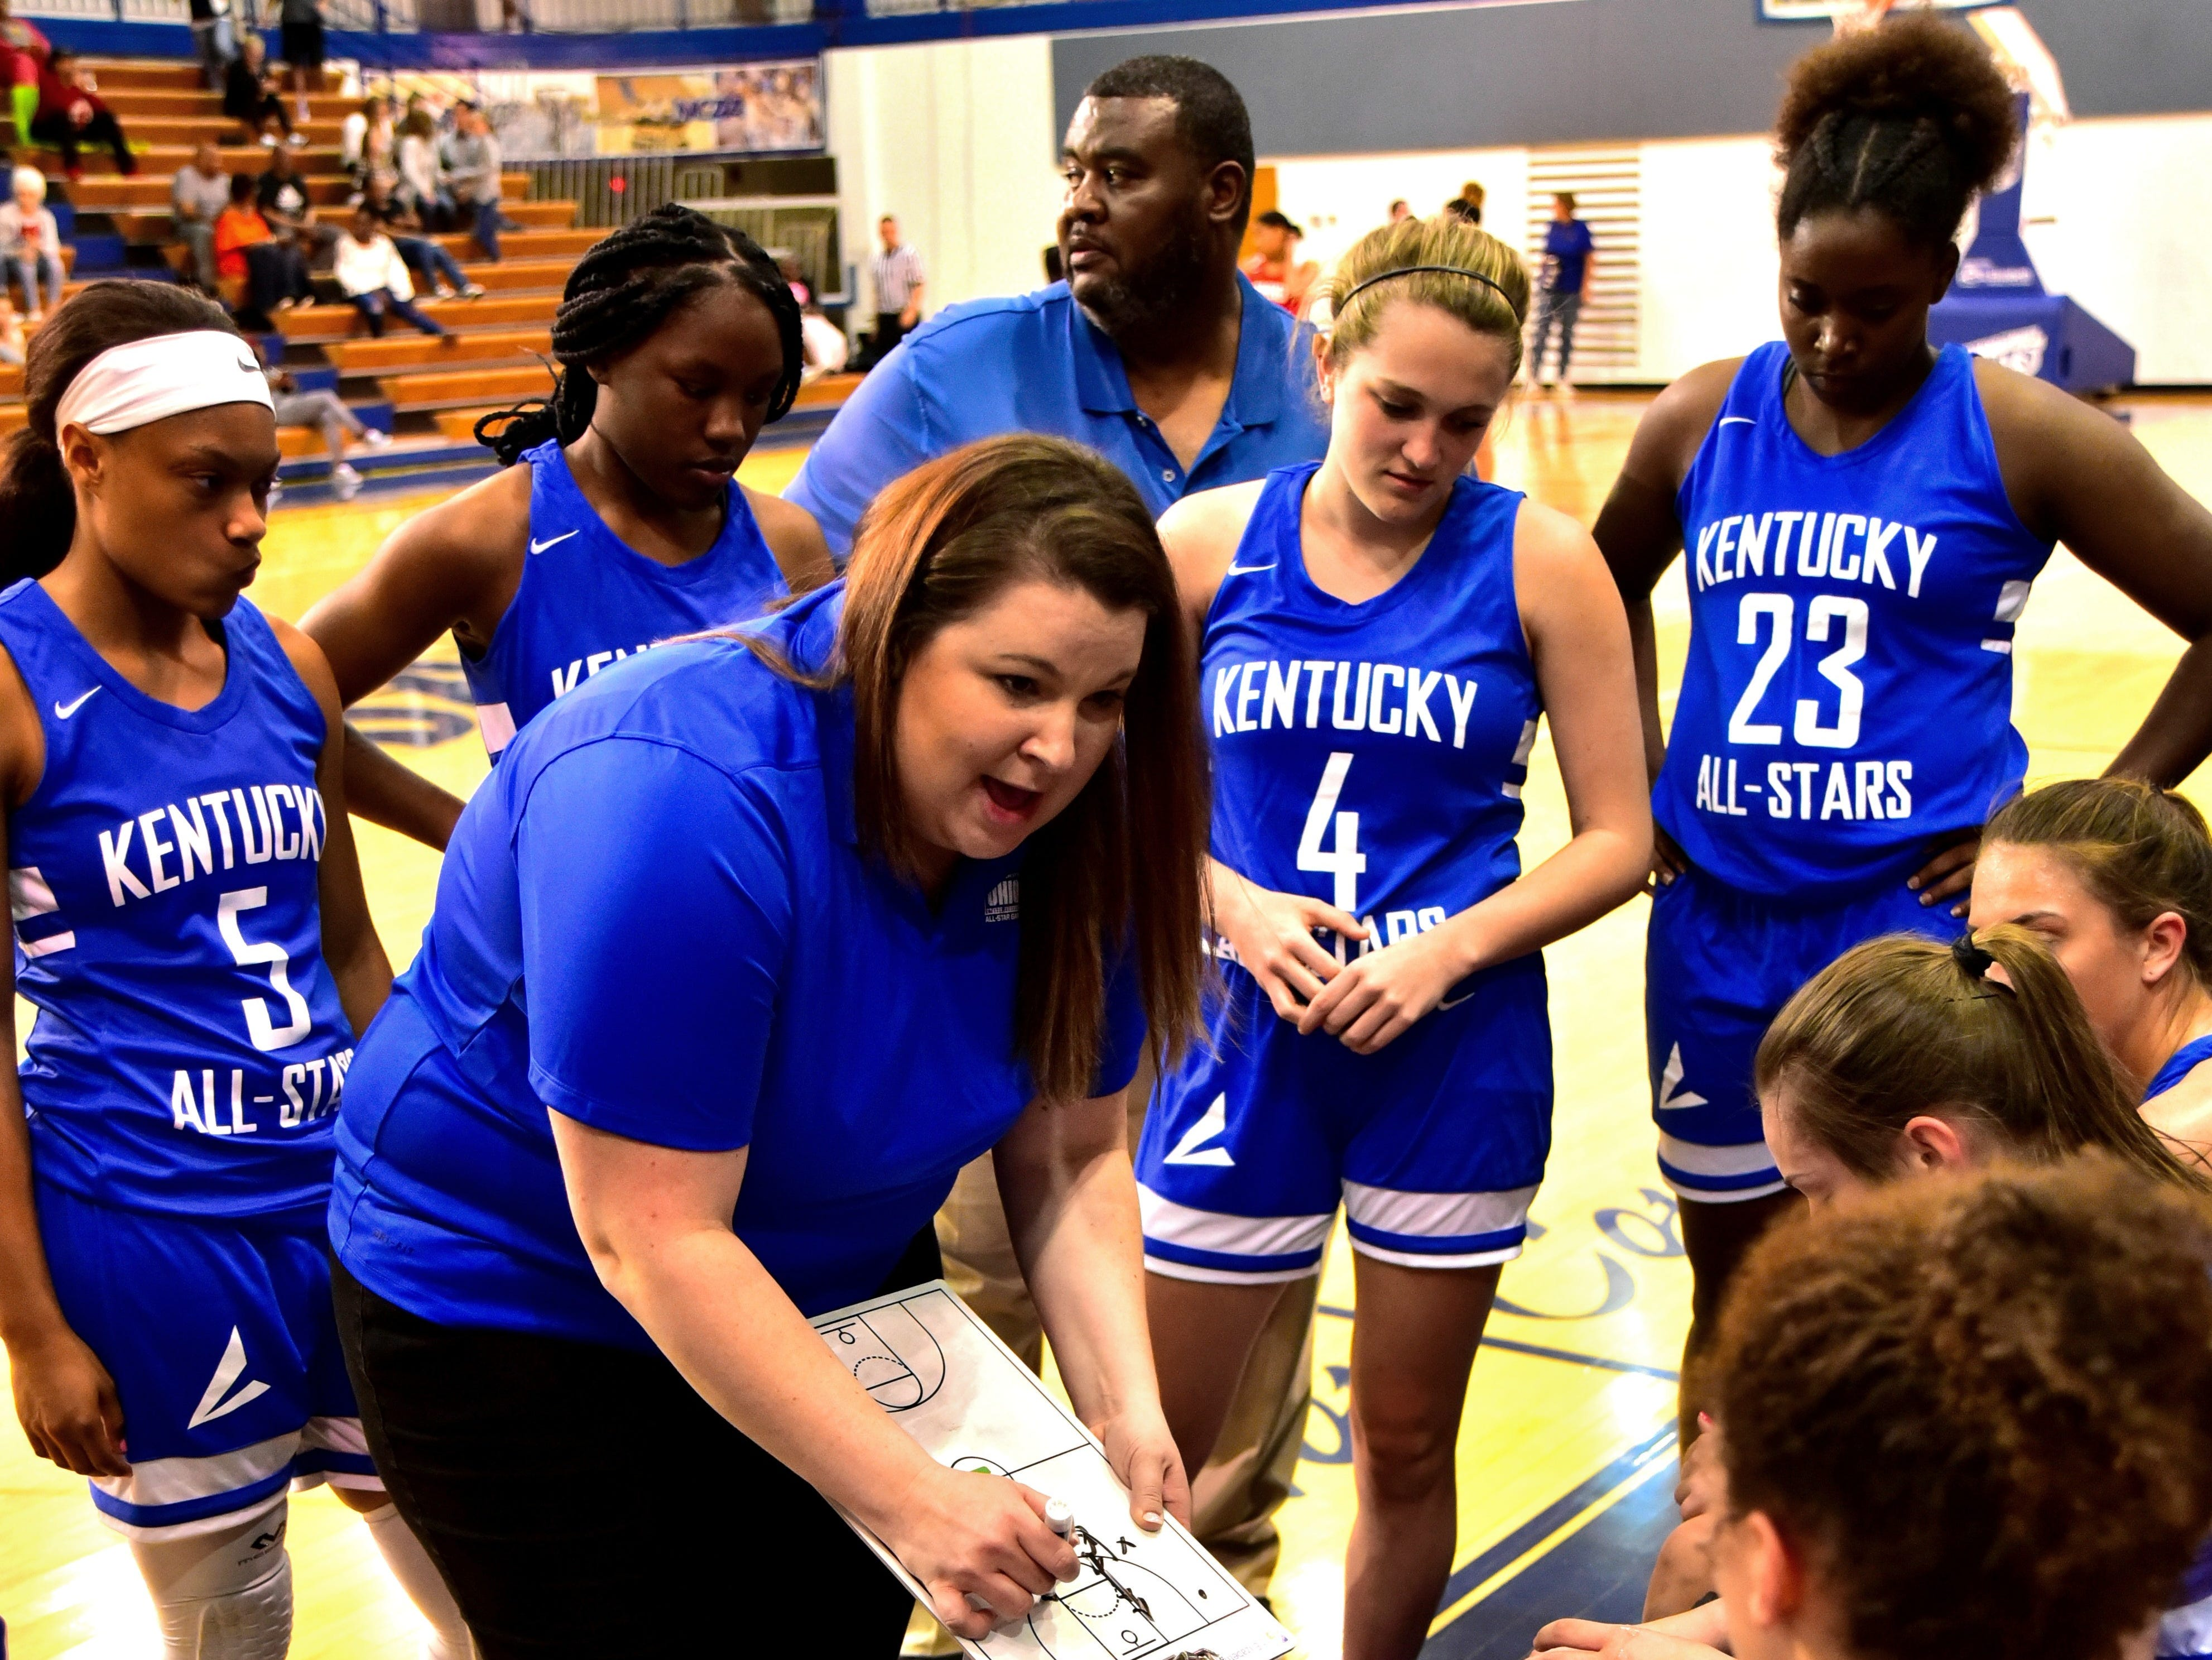 Ryle head coach Katie Haitz, serving as the Kentucky girls team head coach, offers some offensive direction during a time out at the 28th Annual Ohio-Kentucky All Star Games played at Thomas More University, April 13, 2019